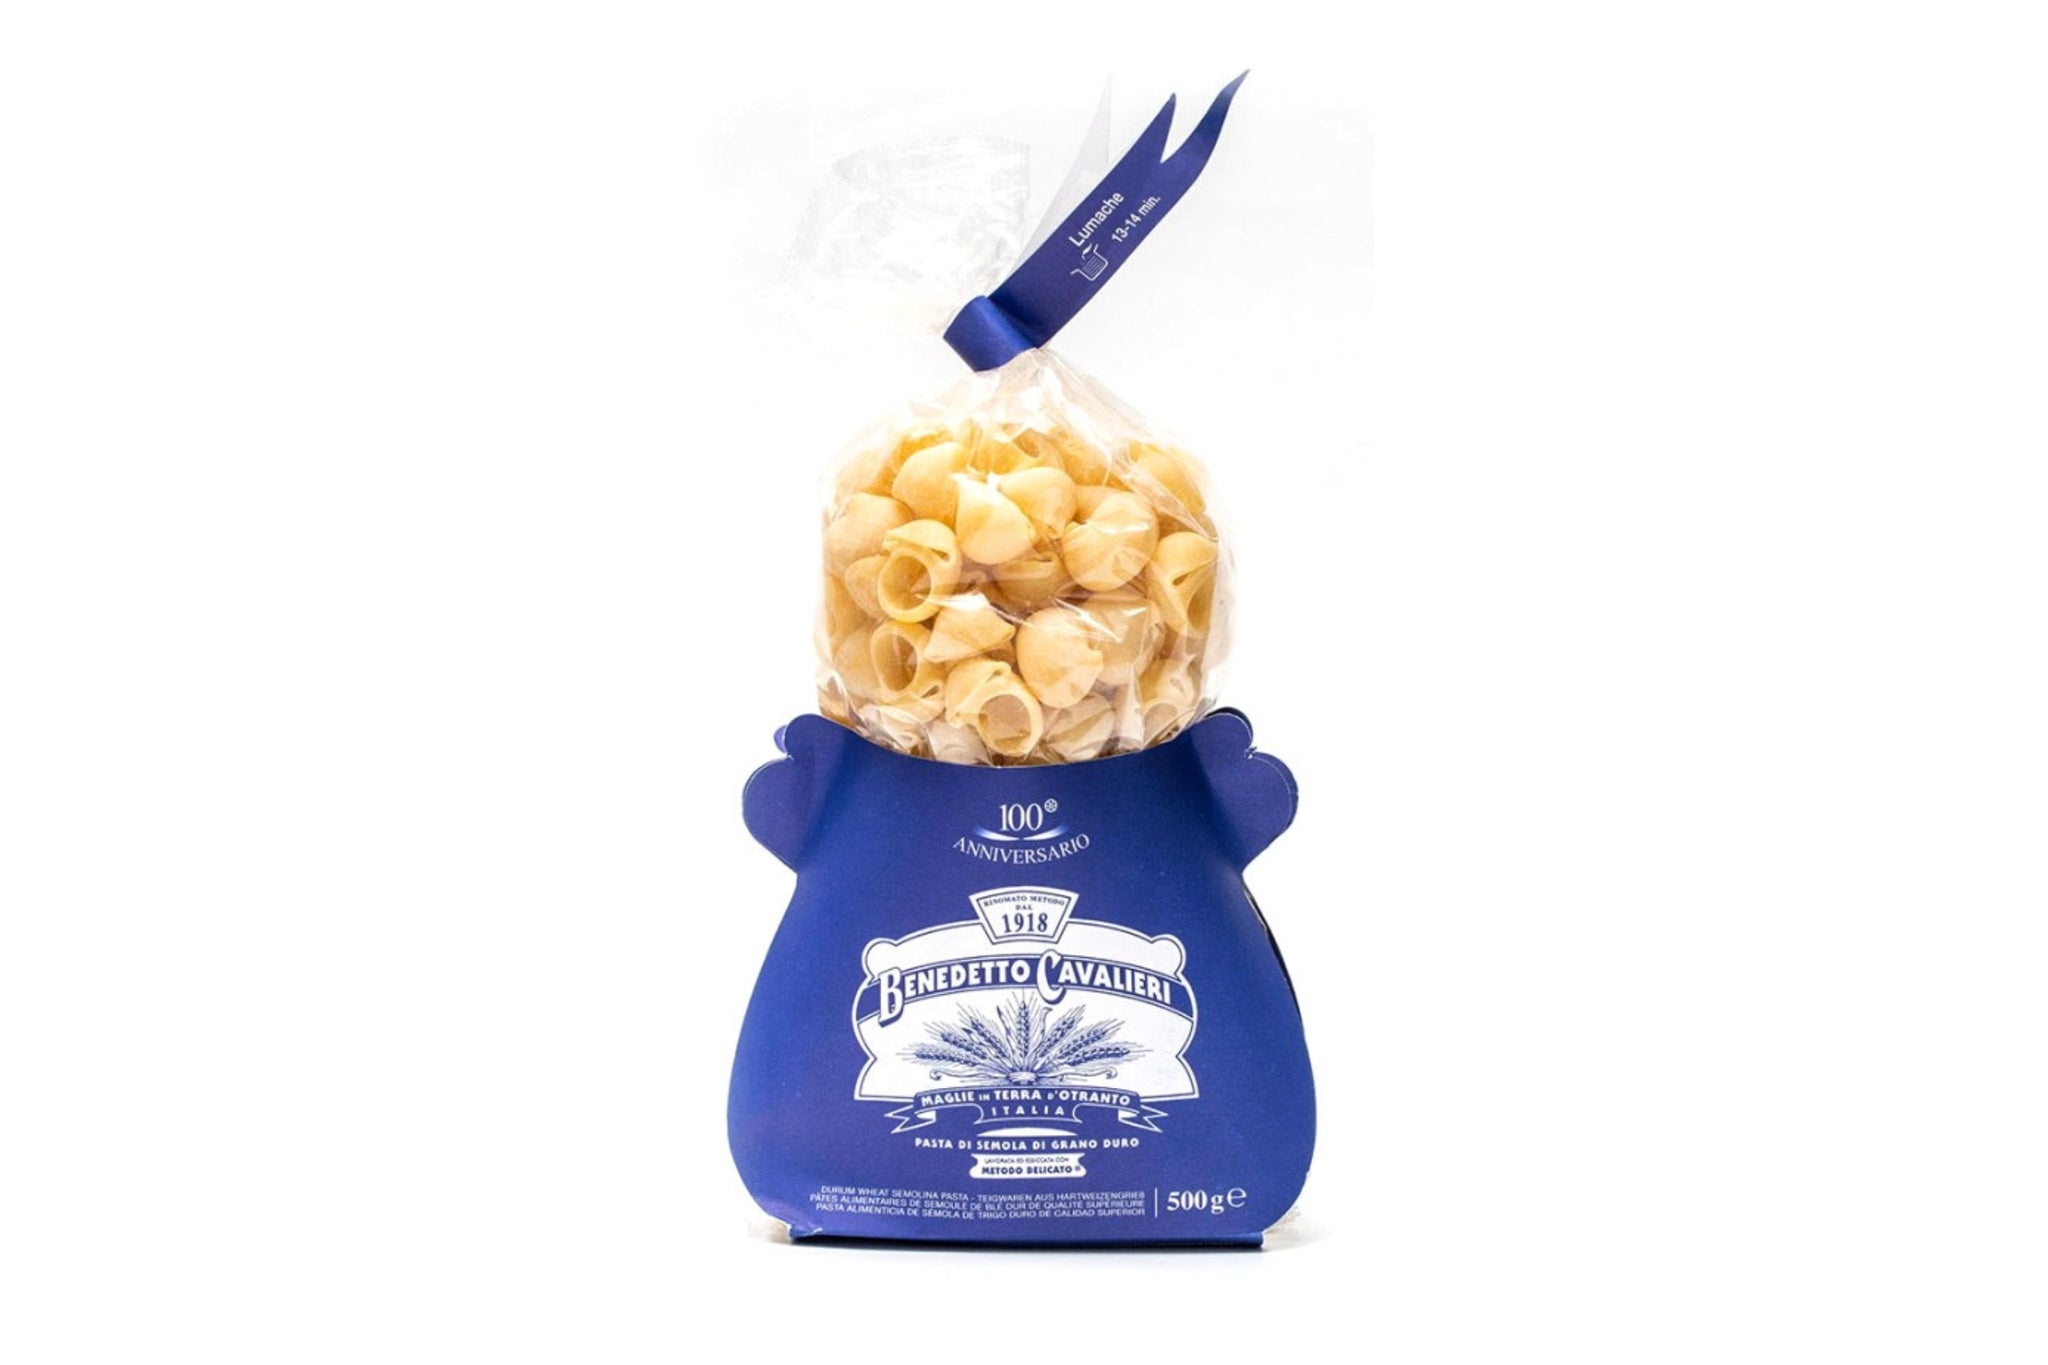 Benedetto Cavalieri Lumache 500g | Bronze cut pasta made in Apulia